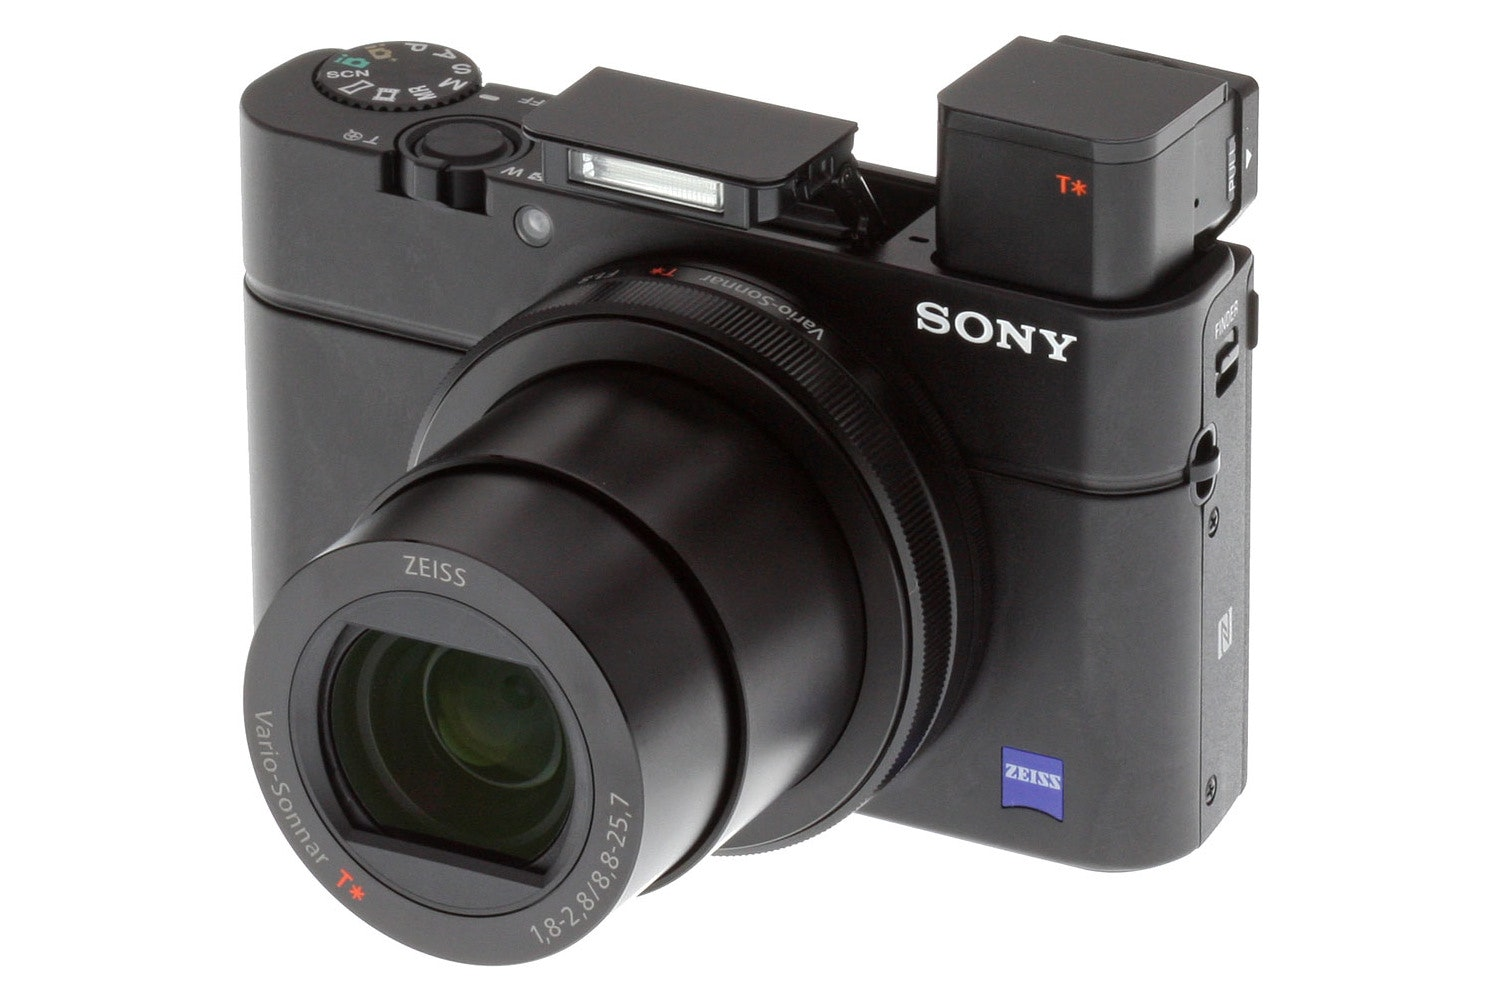 Sony RX100 III Digital Camera